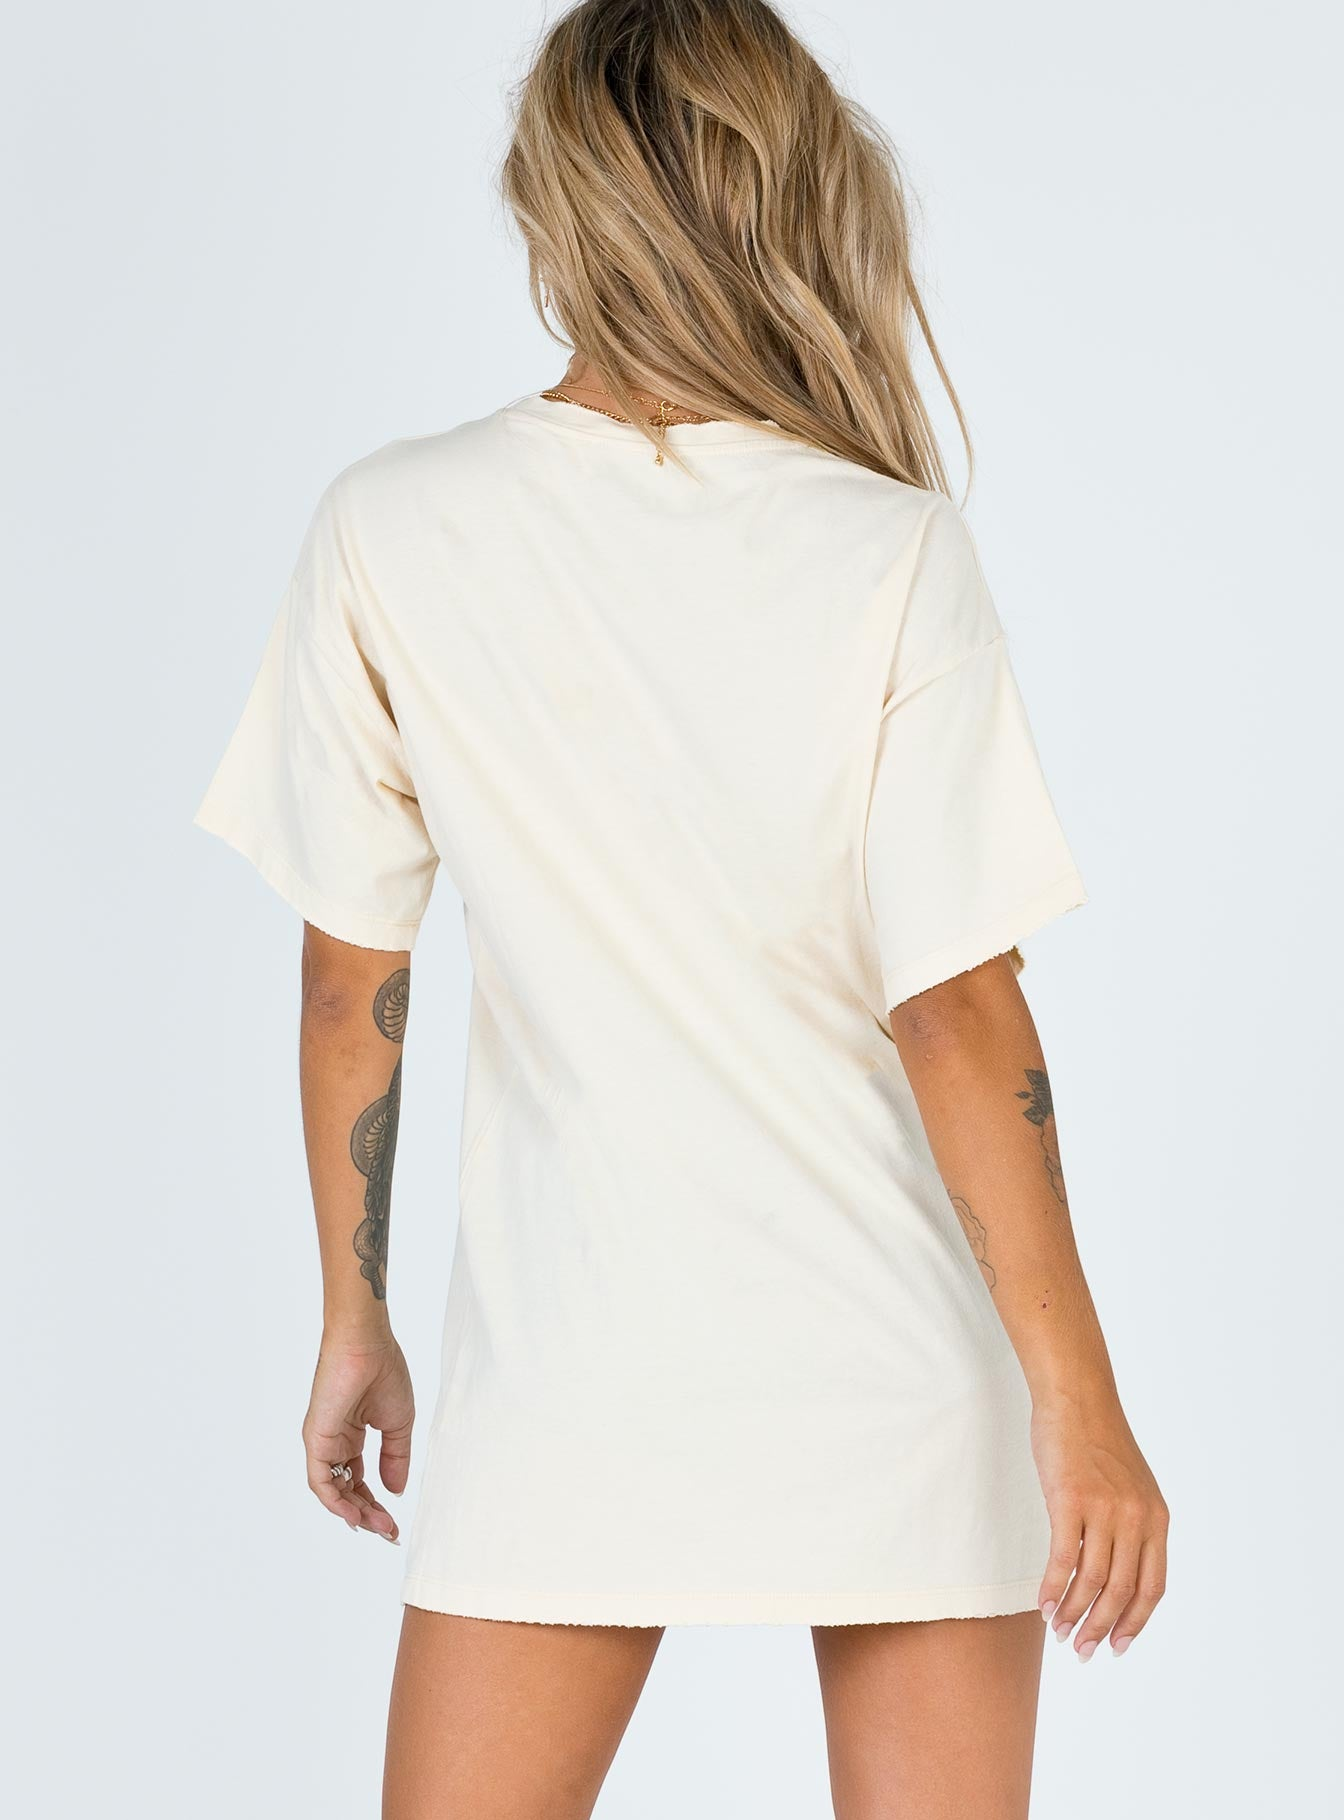 Thunderstruck Tee Mini Dress Cream